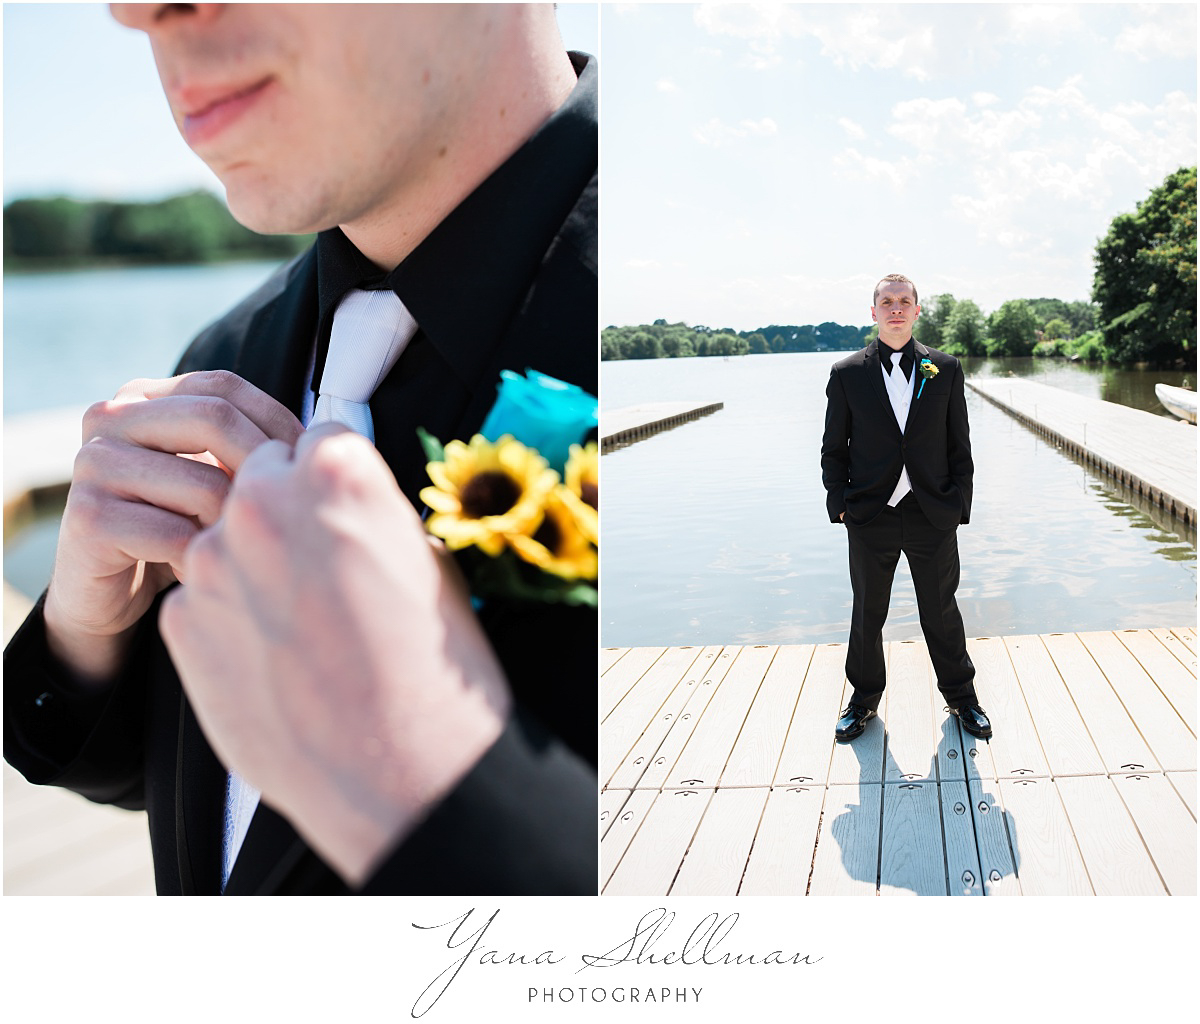 camden-county-boathouse-wedding-photos-by-the-best-lbi-wedding-photographer-emilybob-wedding